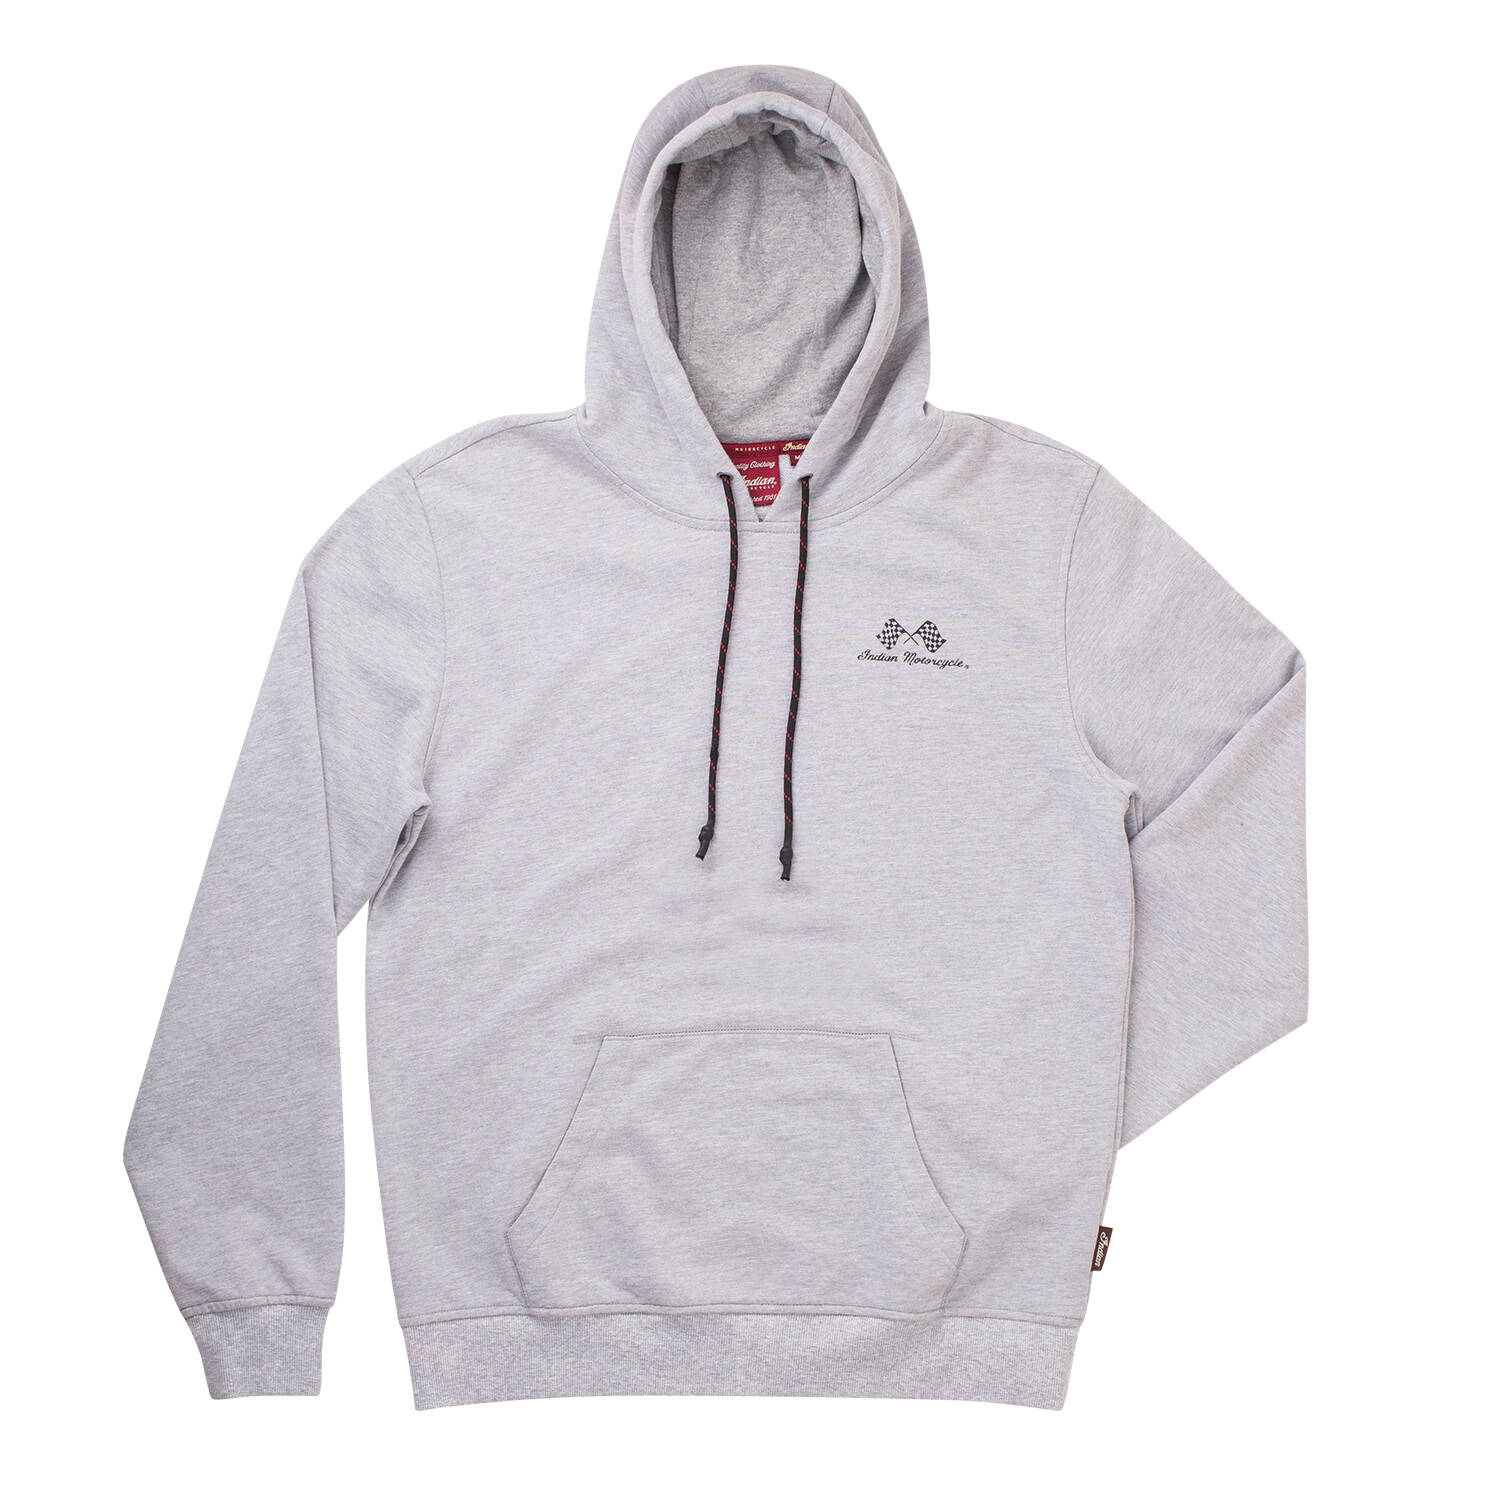 Men's Pullover Hoodie Sweatshirt with Wrecking Crew, Gray